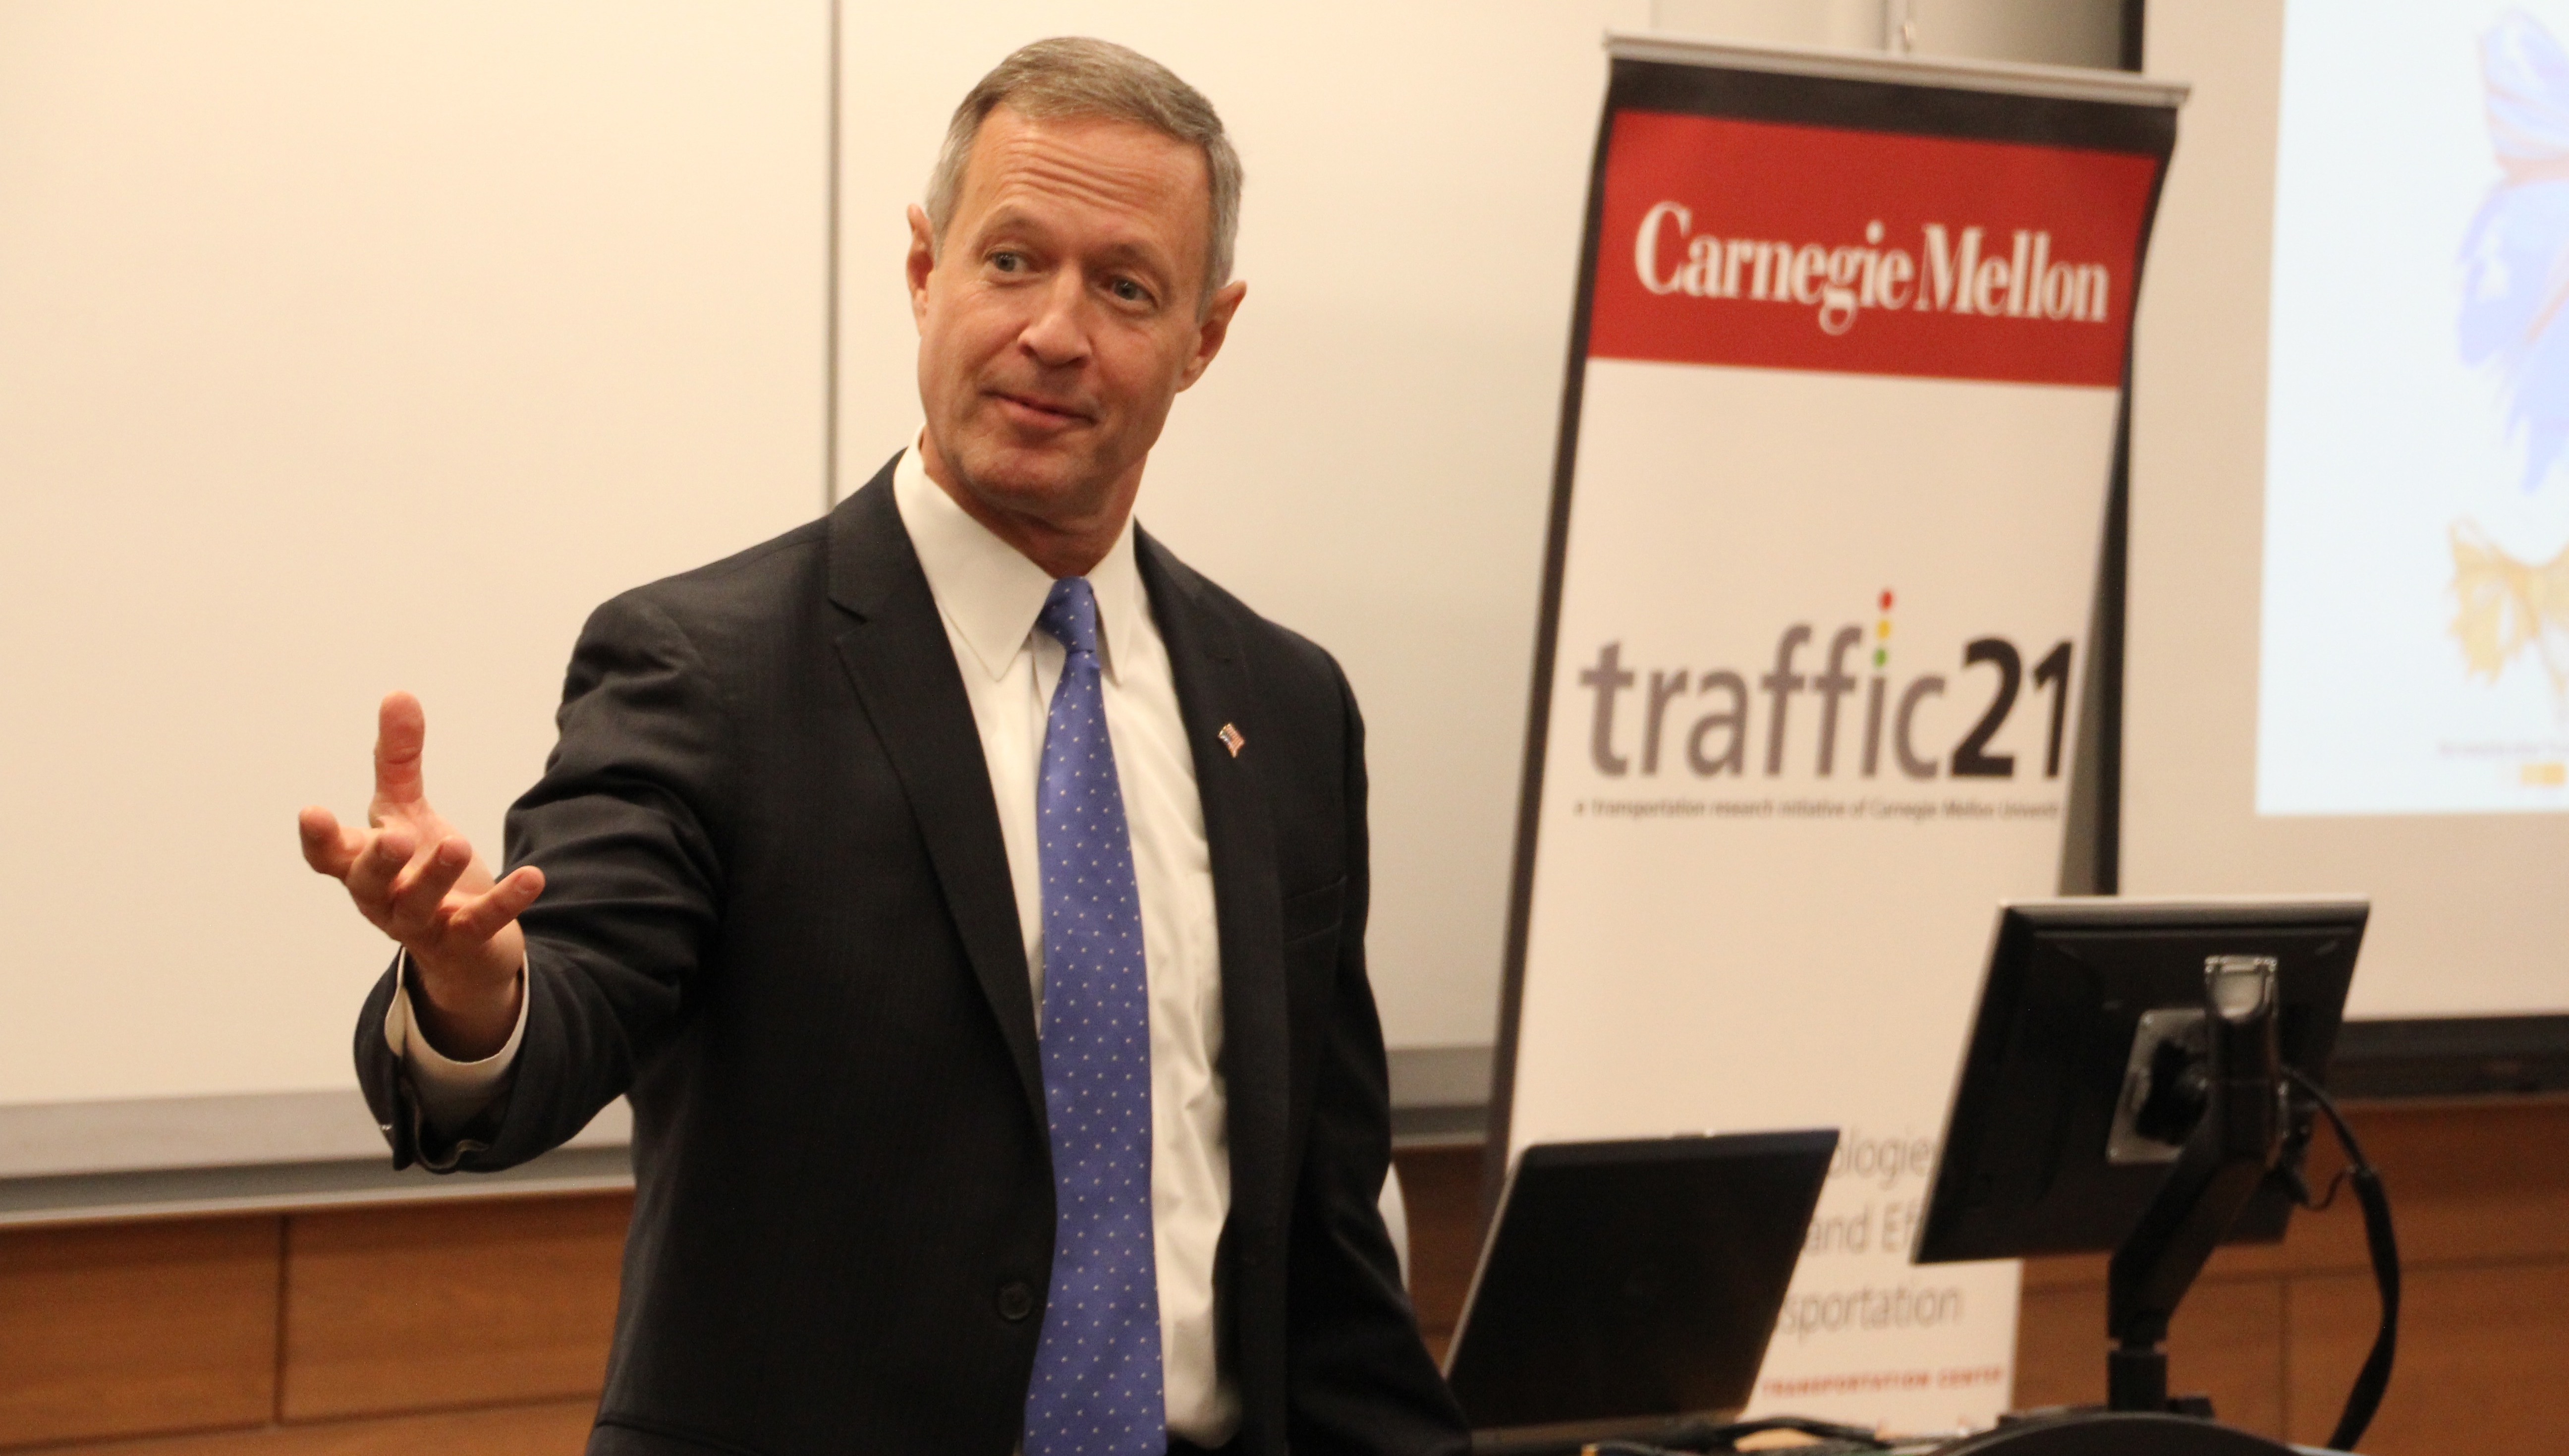 Martin O'Malley speaking at Heinz College